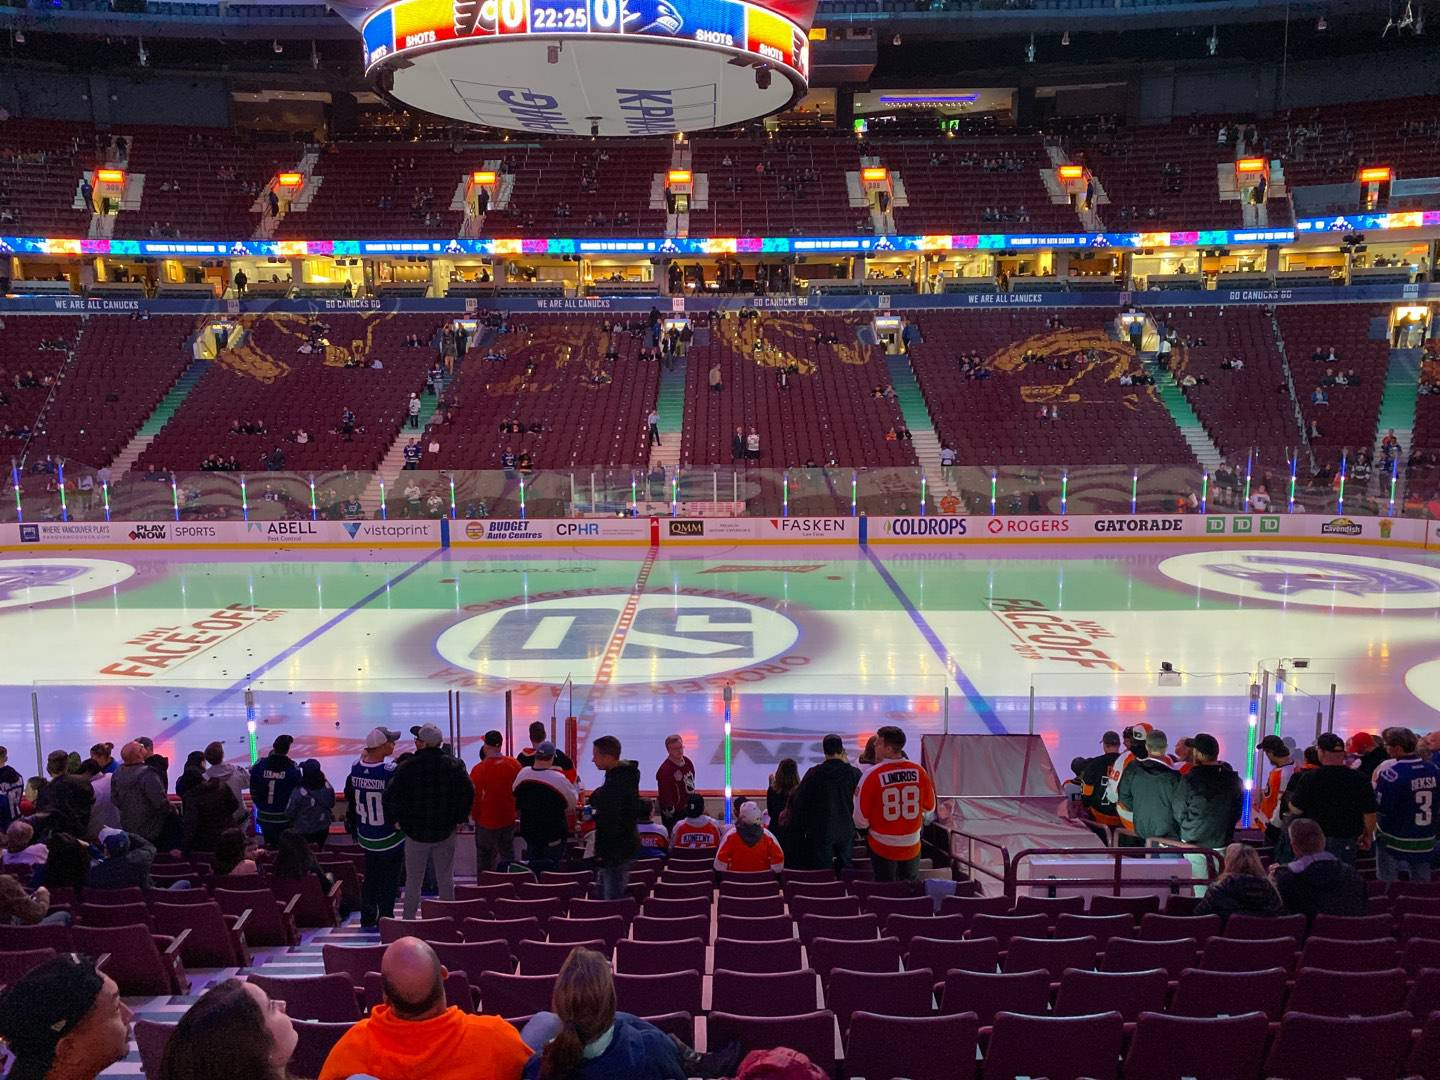 Rogers Arena Section 117 Row 17 Seat 5